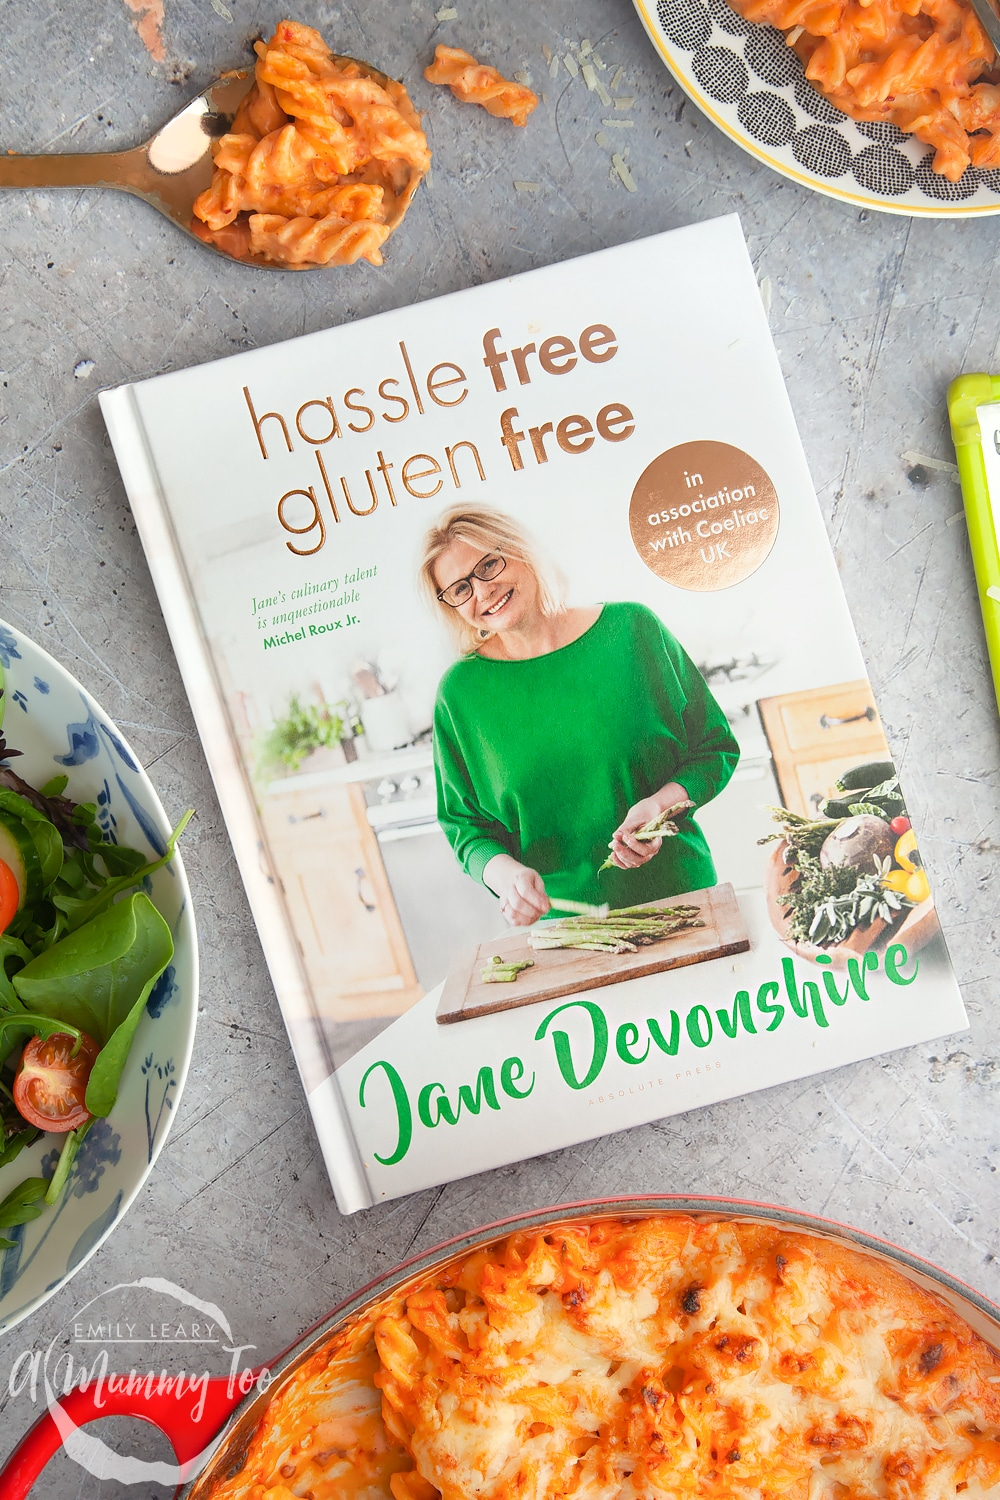 Hassle Free Gluten Free by Jane Devonshire